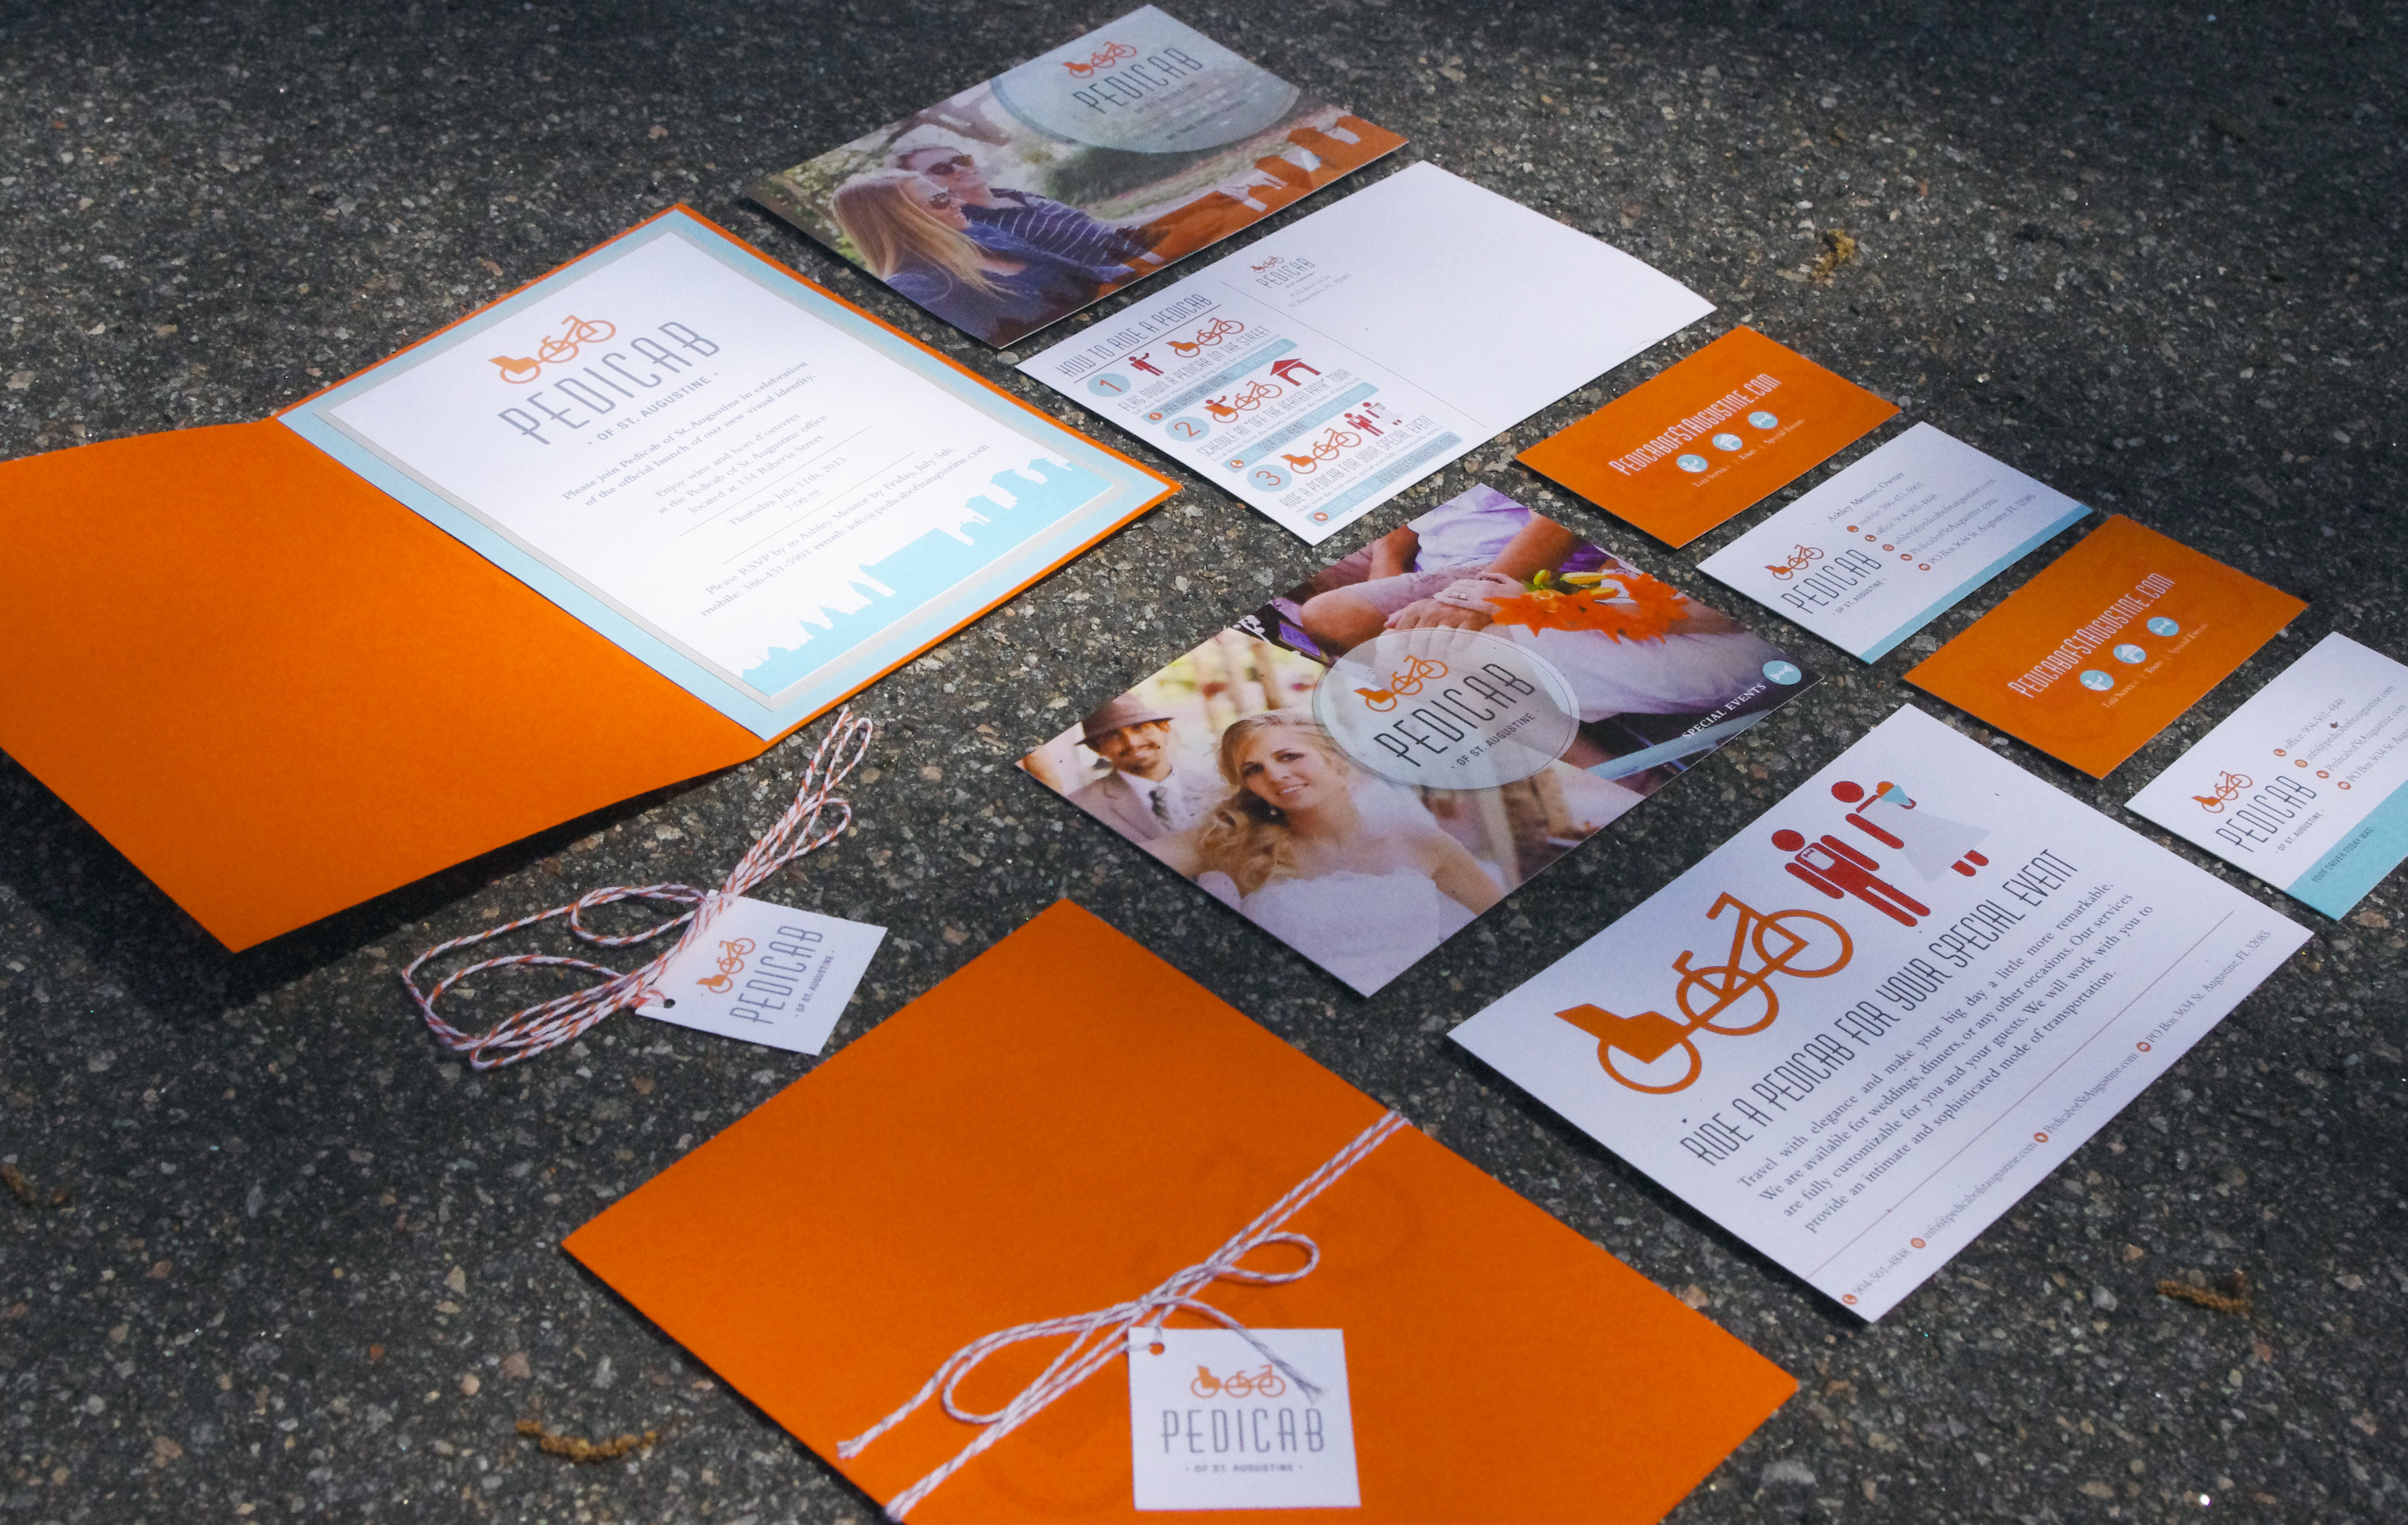 Pedicab of St. Augustine Branding Stationery by Just Make Things